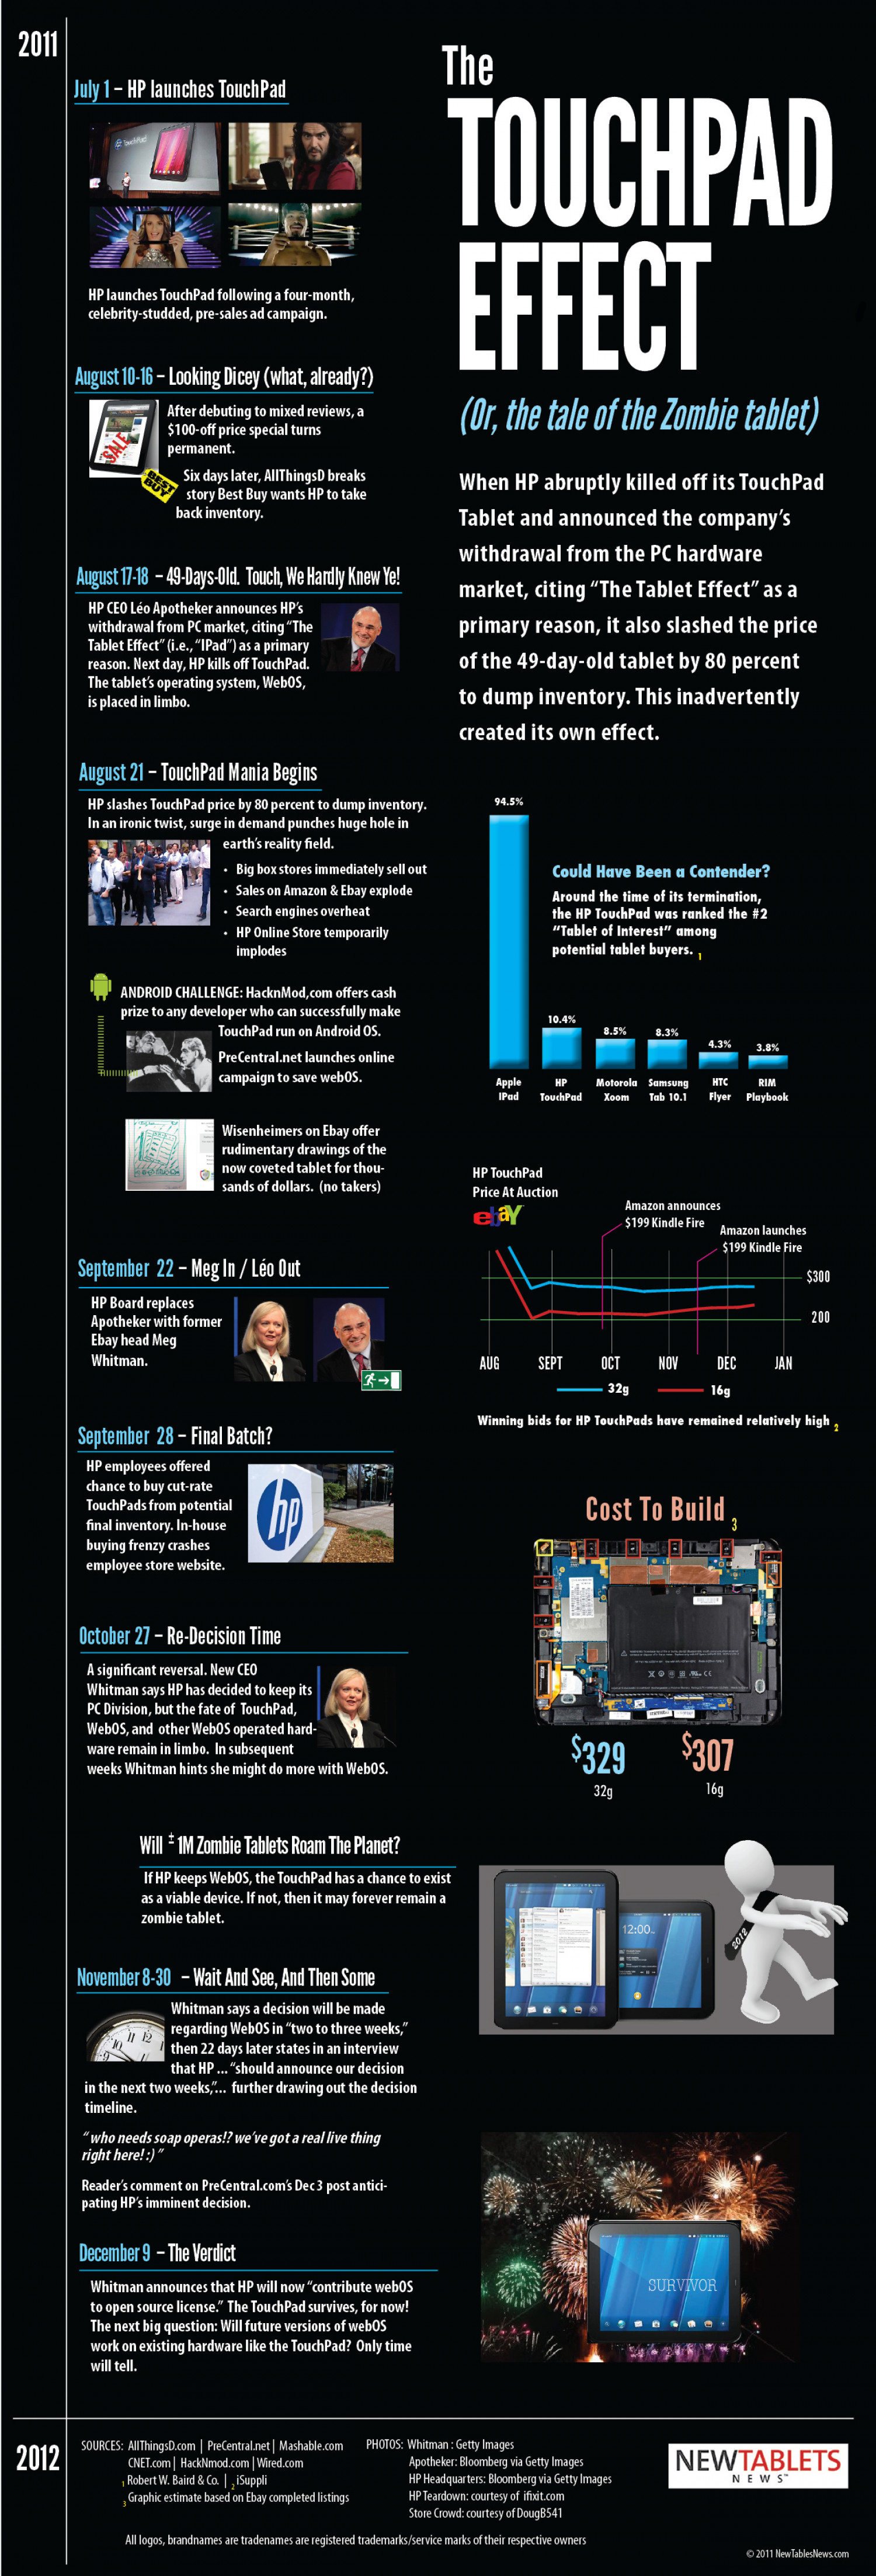 The TouchPad Effect Infographic